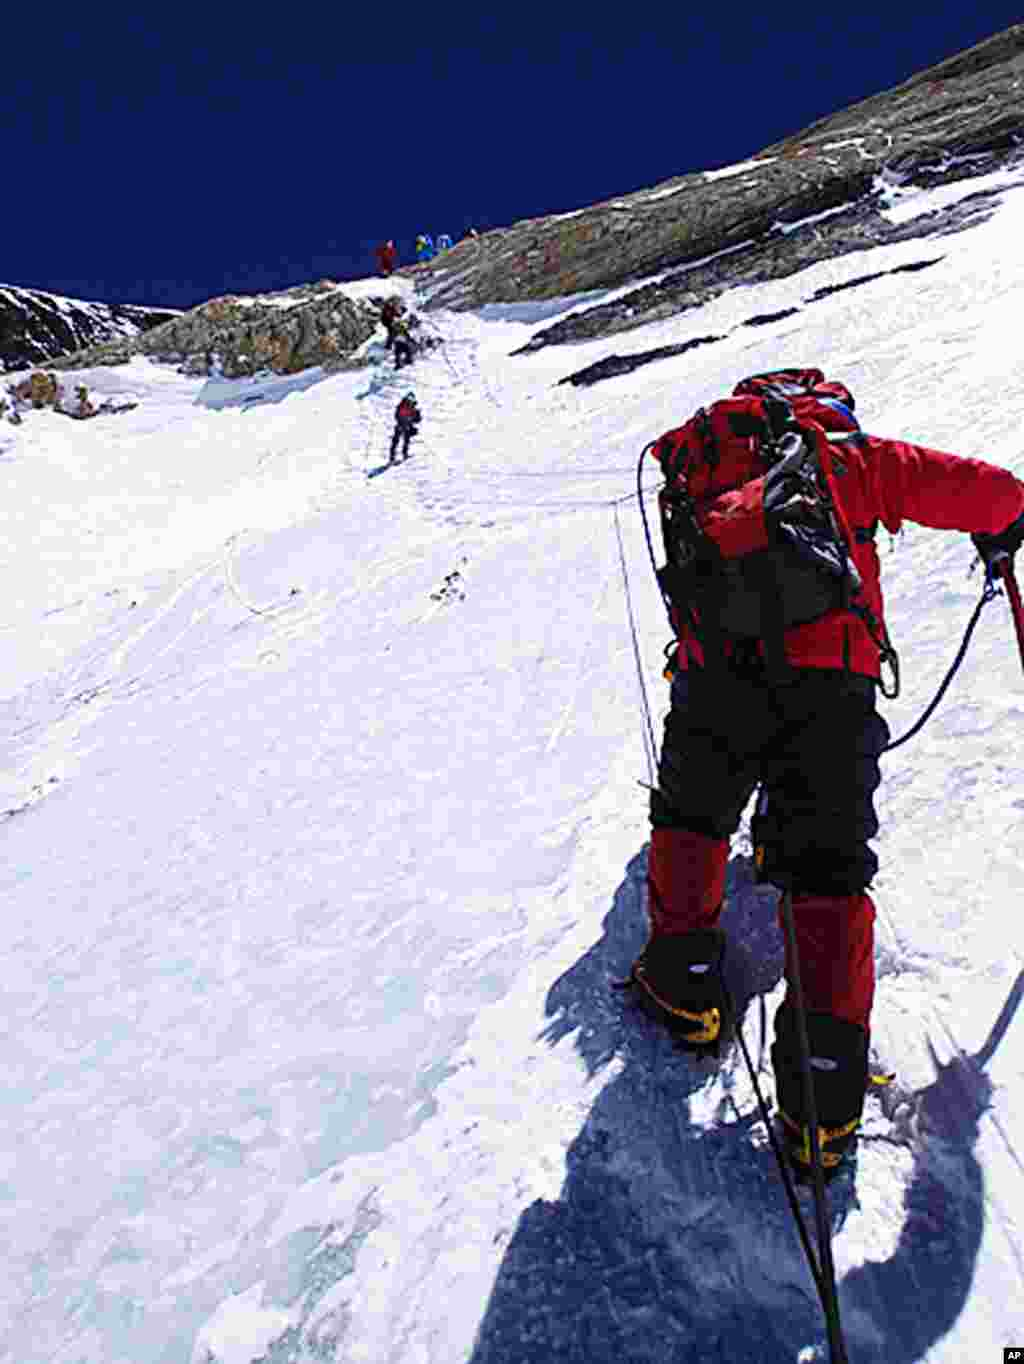 Yuichiro Miura goes through the South Col pass to a camp at 8,000 meters during his attempt to scale the summit of Mount Everest, May 21, 2013. (AP Photo/Miura Dolphins)